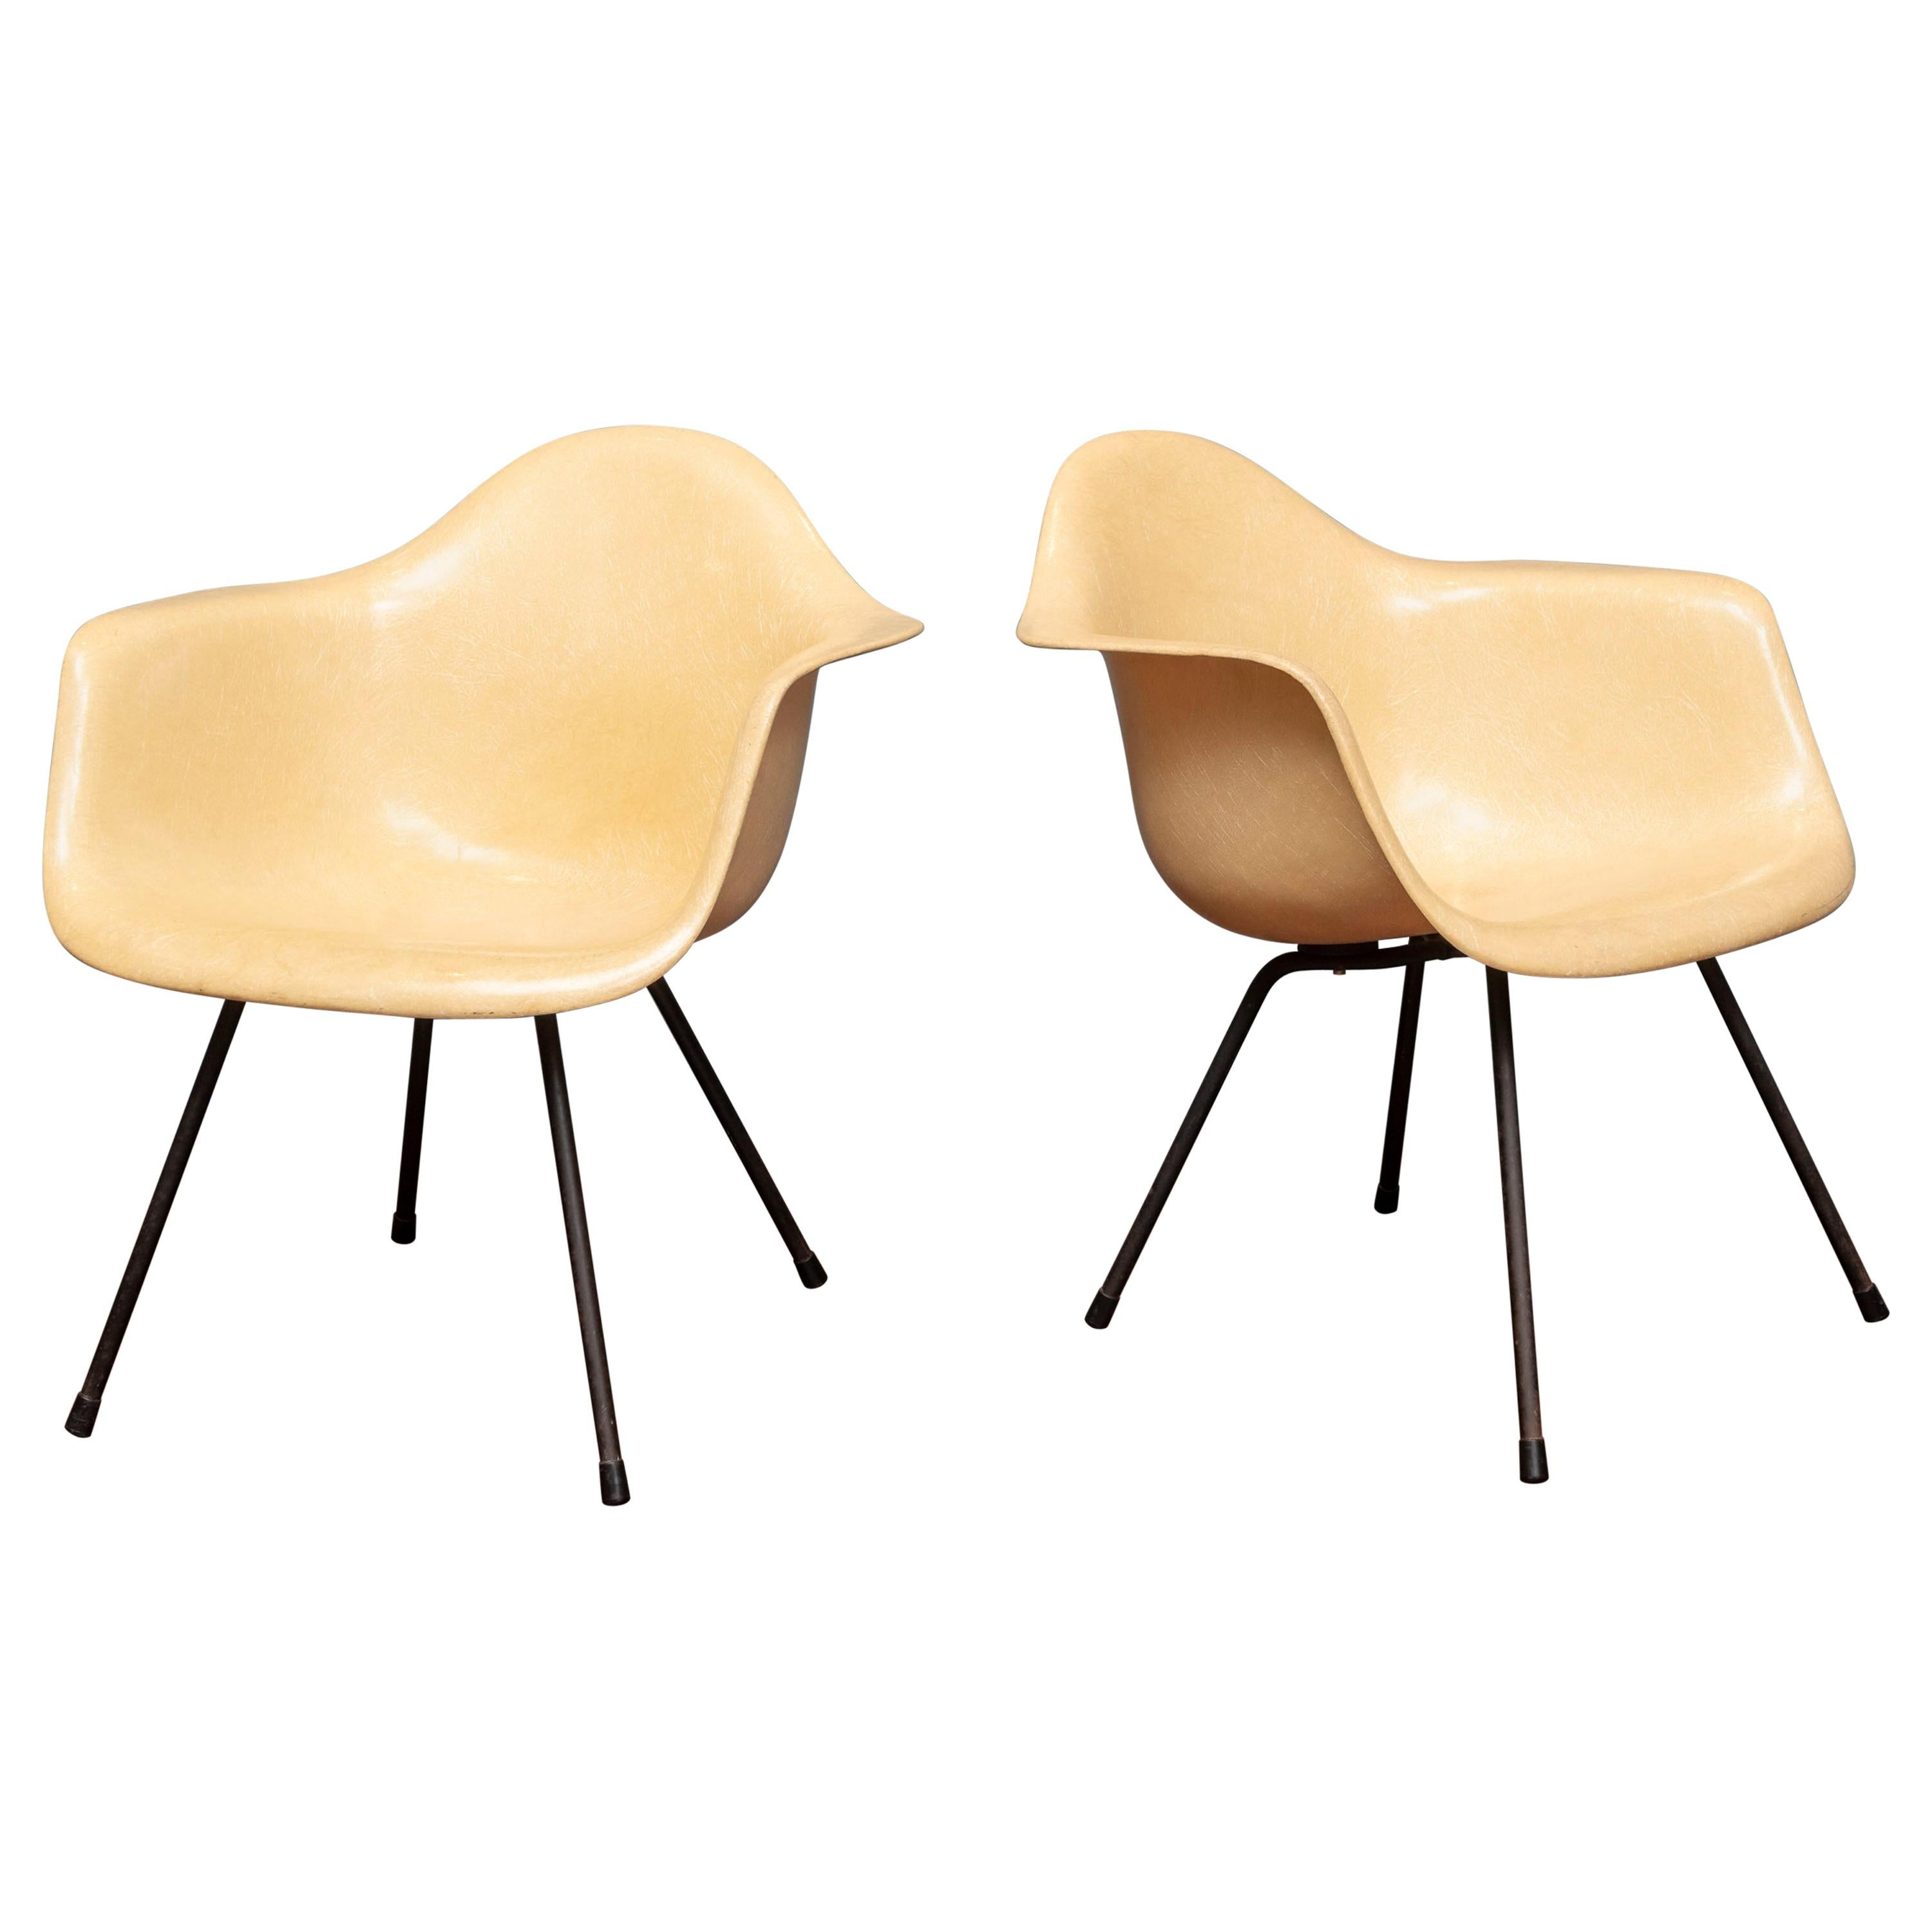 Charles Eames MAX Armshell Lounge Chairs